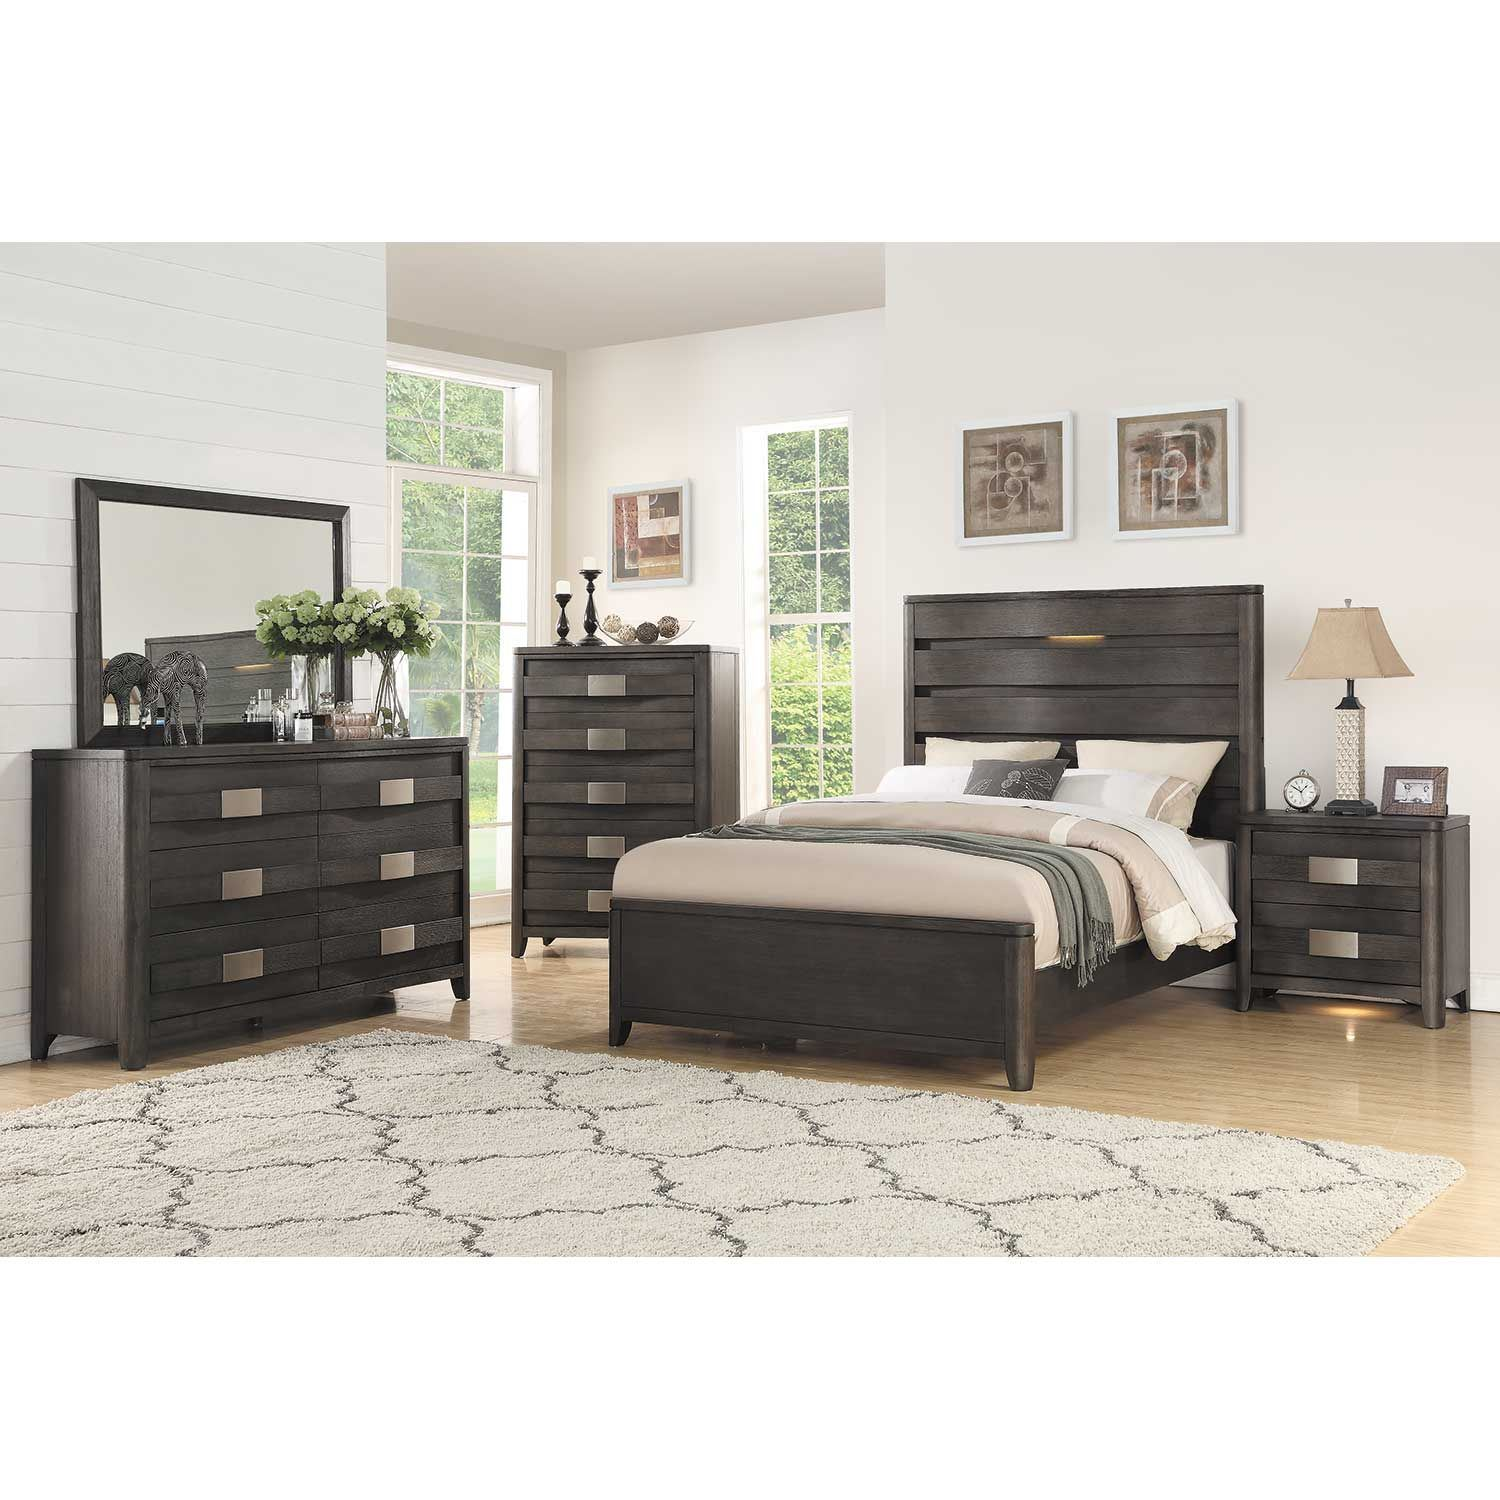 Picture of Contour Drawer Dresser